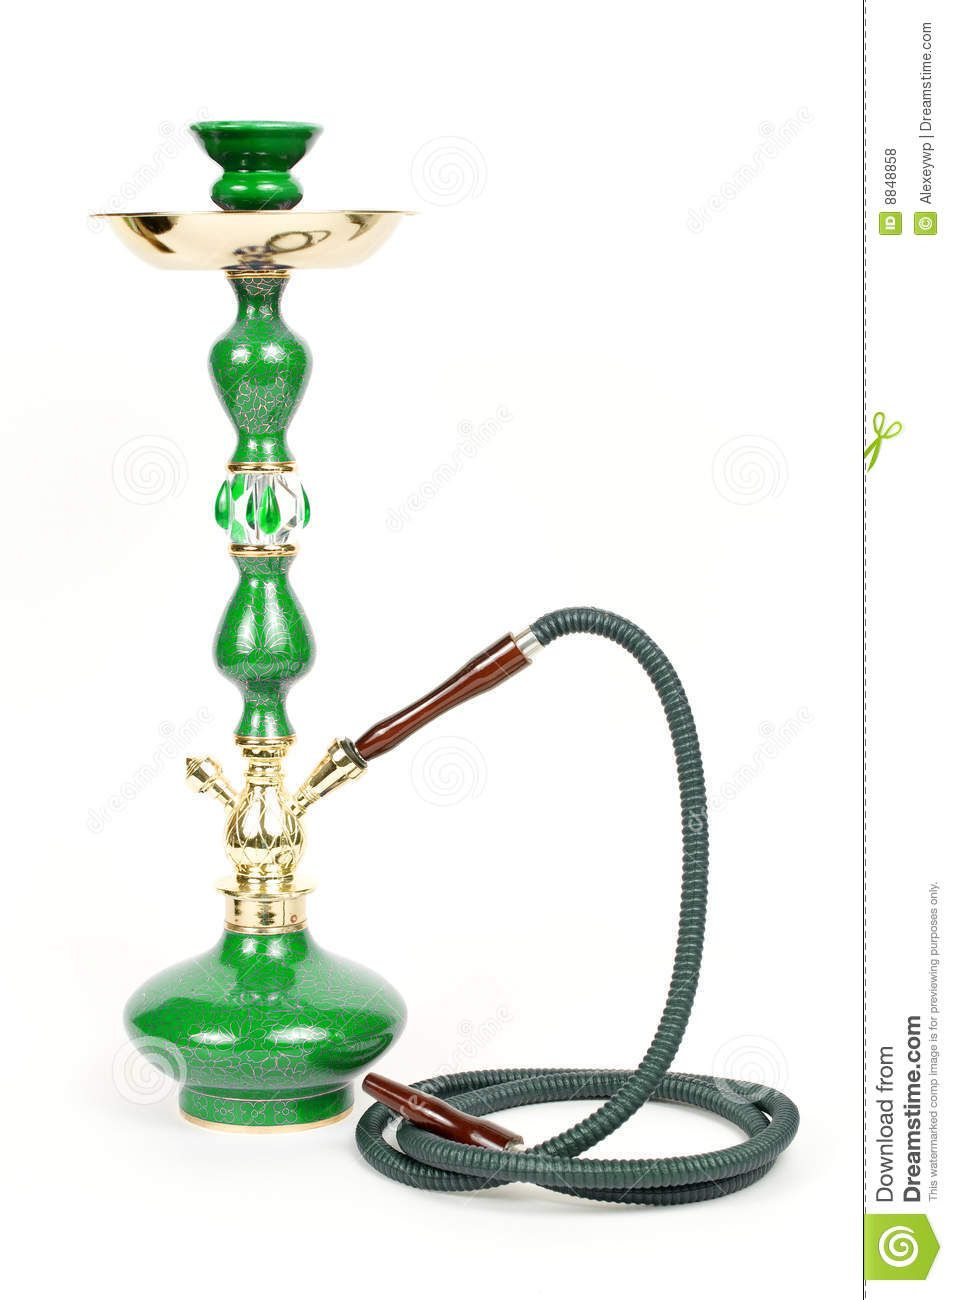 Green Hookah - Download From Over 49 Million High Quality Stock